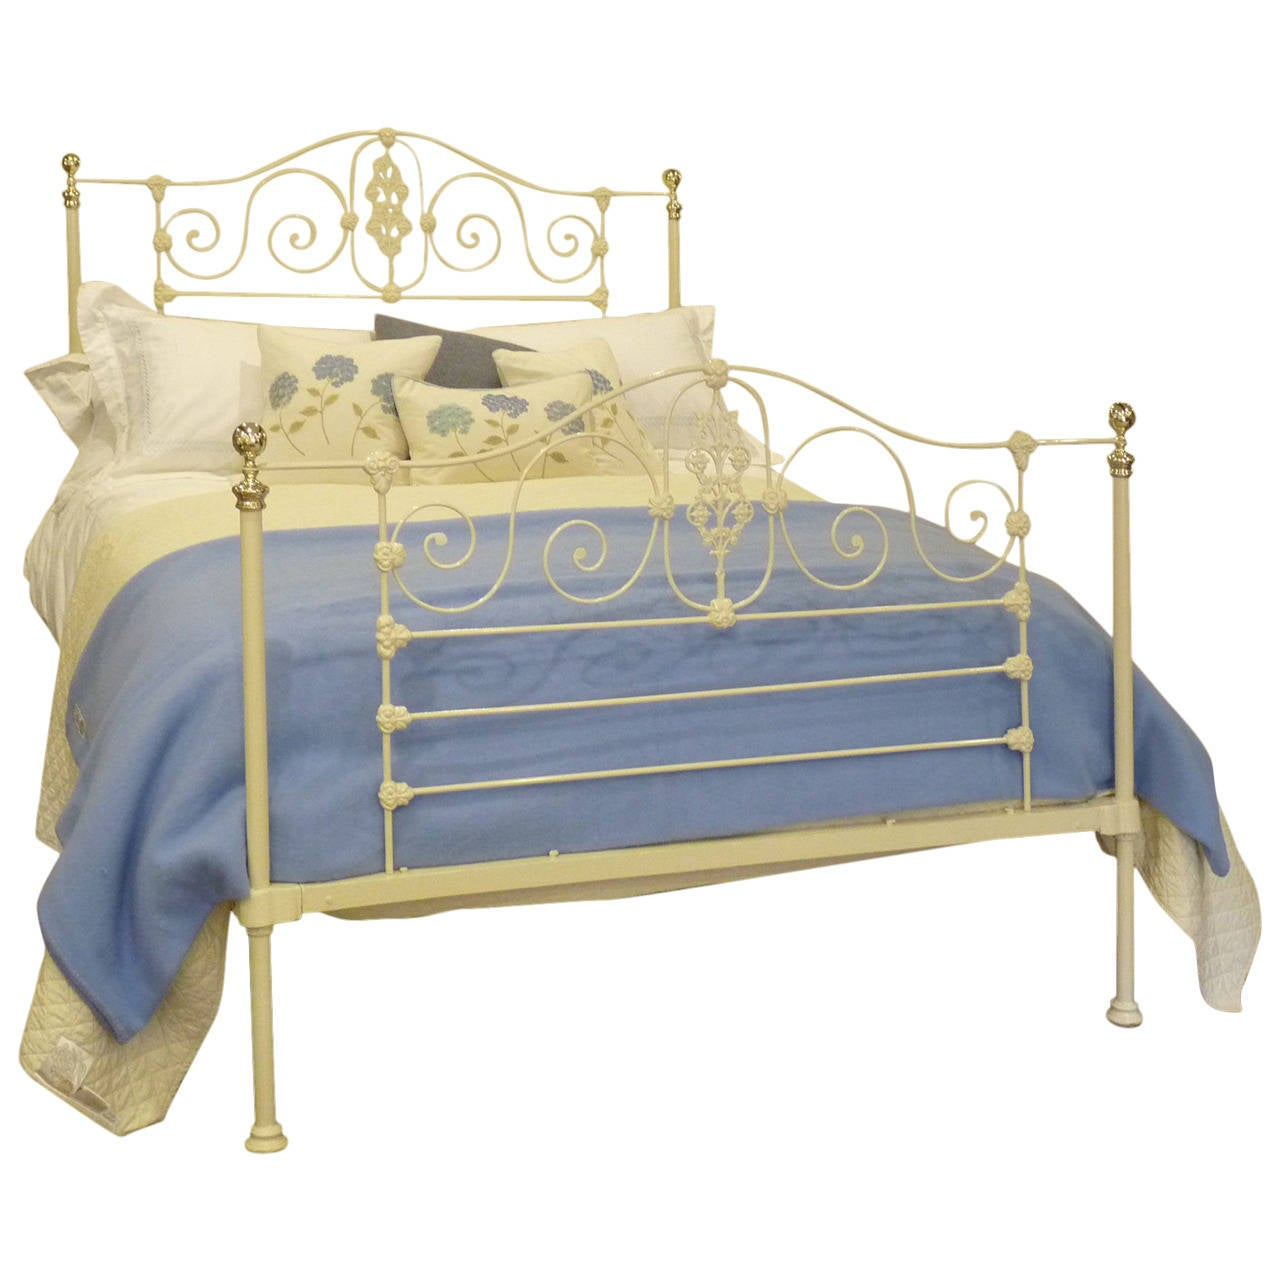 Victorian Cast Iron Beds : Superb mid victorian cast iron bed at stdibs